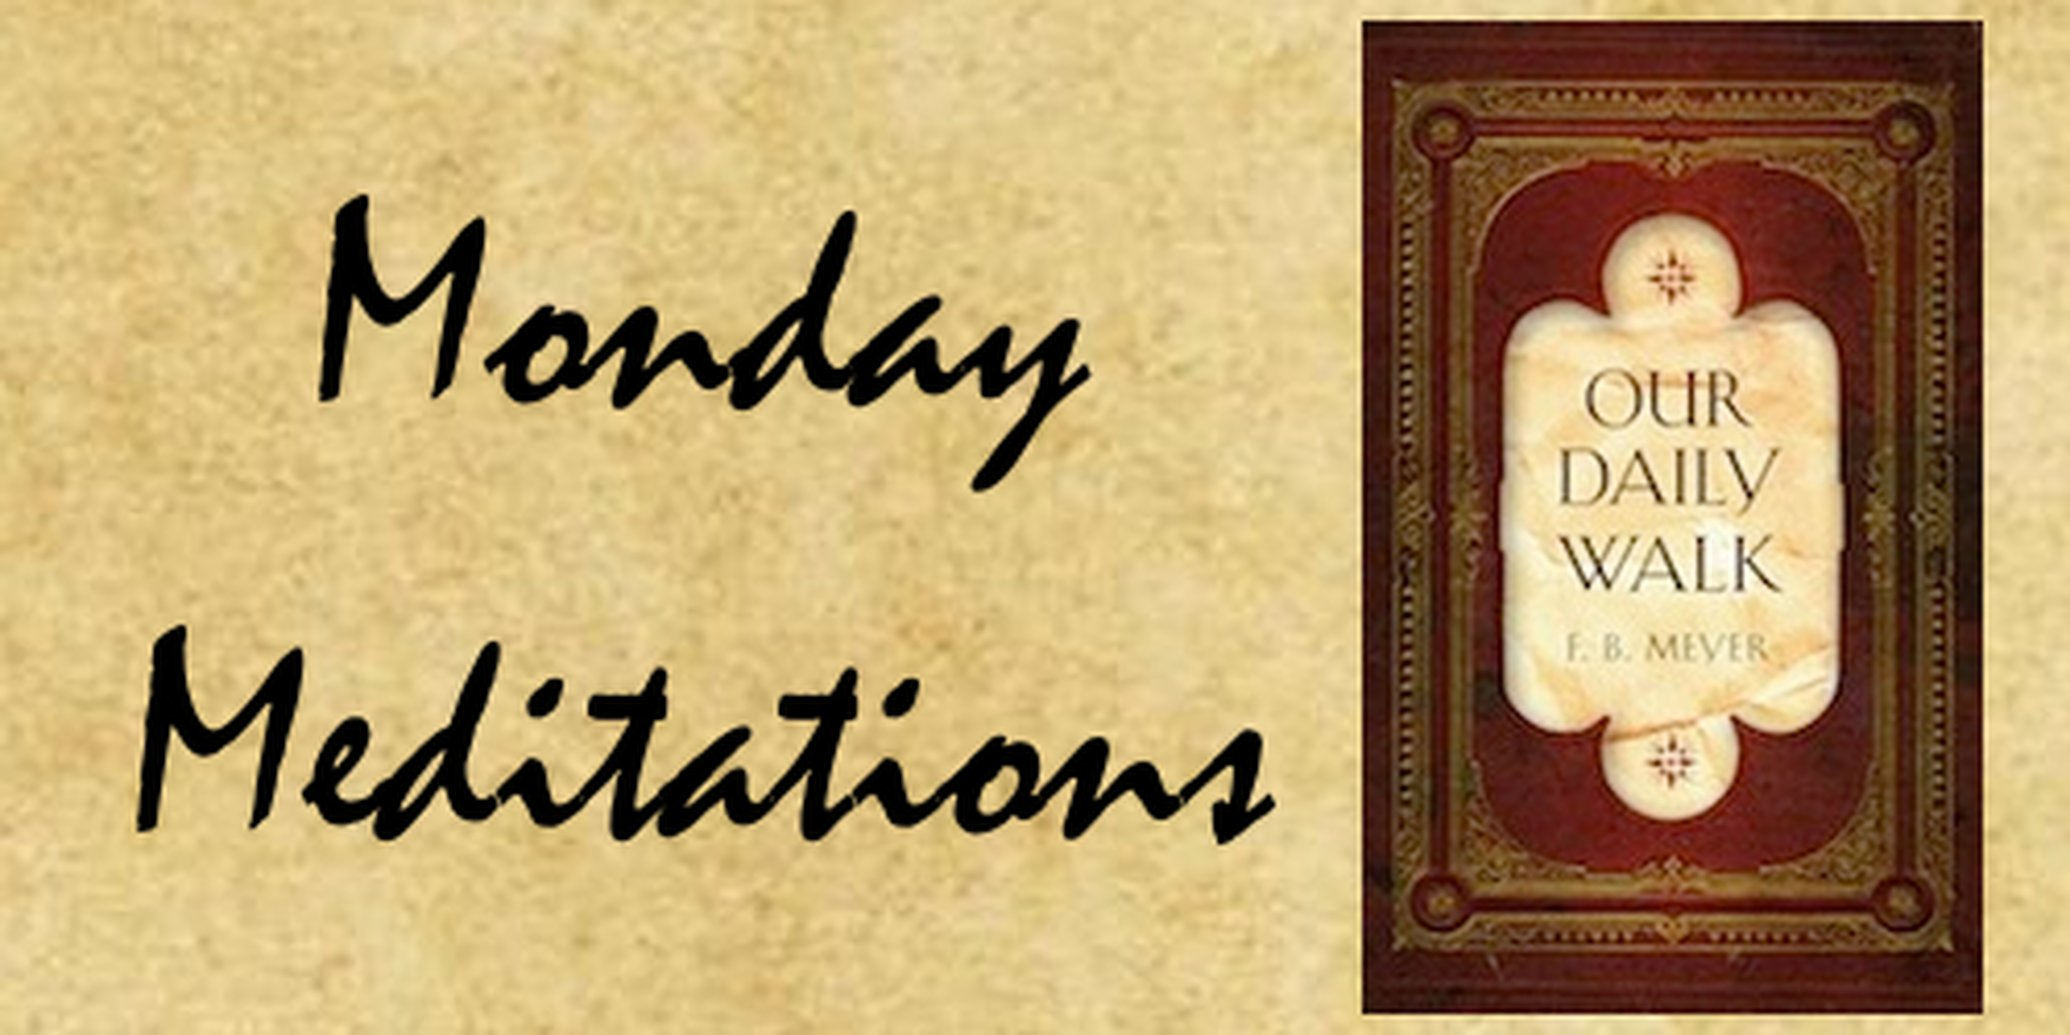 Monday Meditations: The Indwelling Spirit